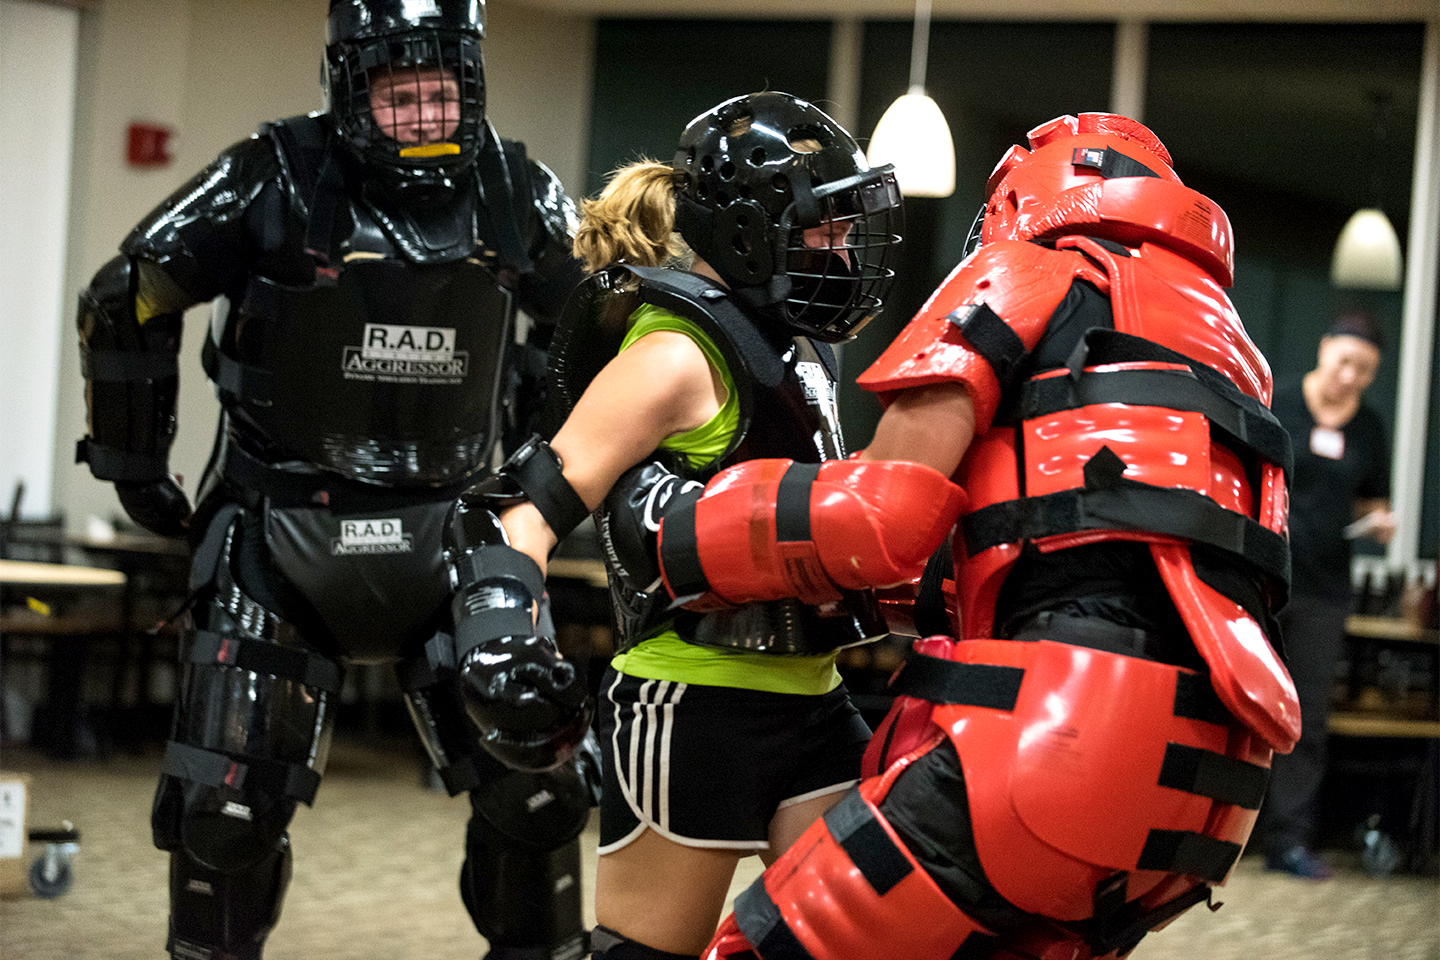 Oakland University offering women's self-defense classes